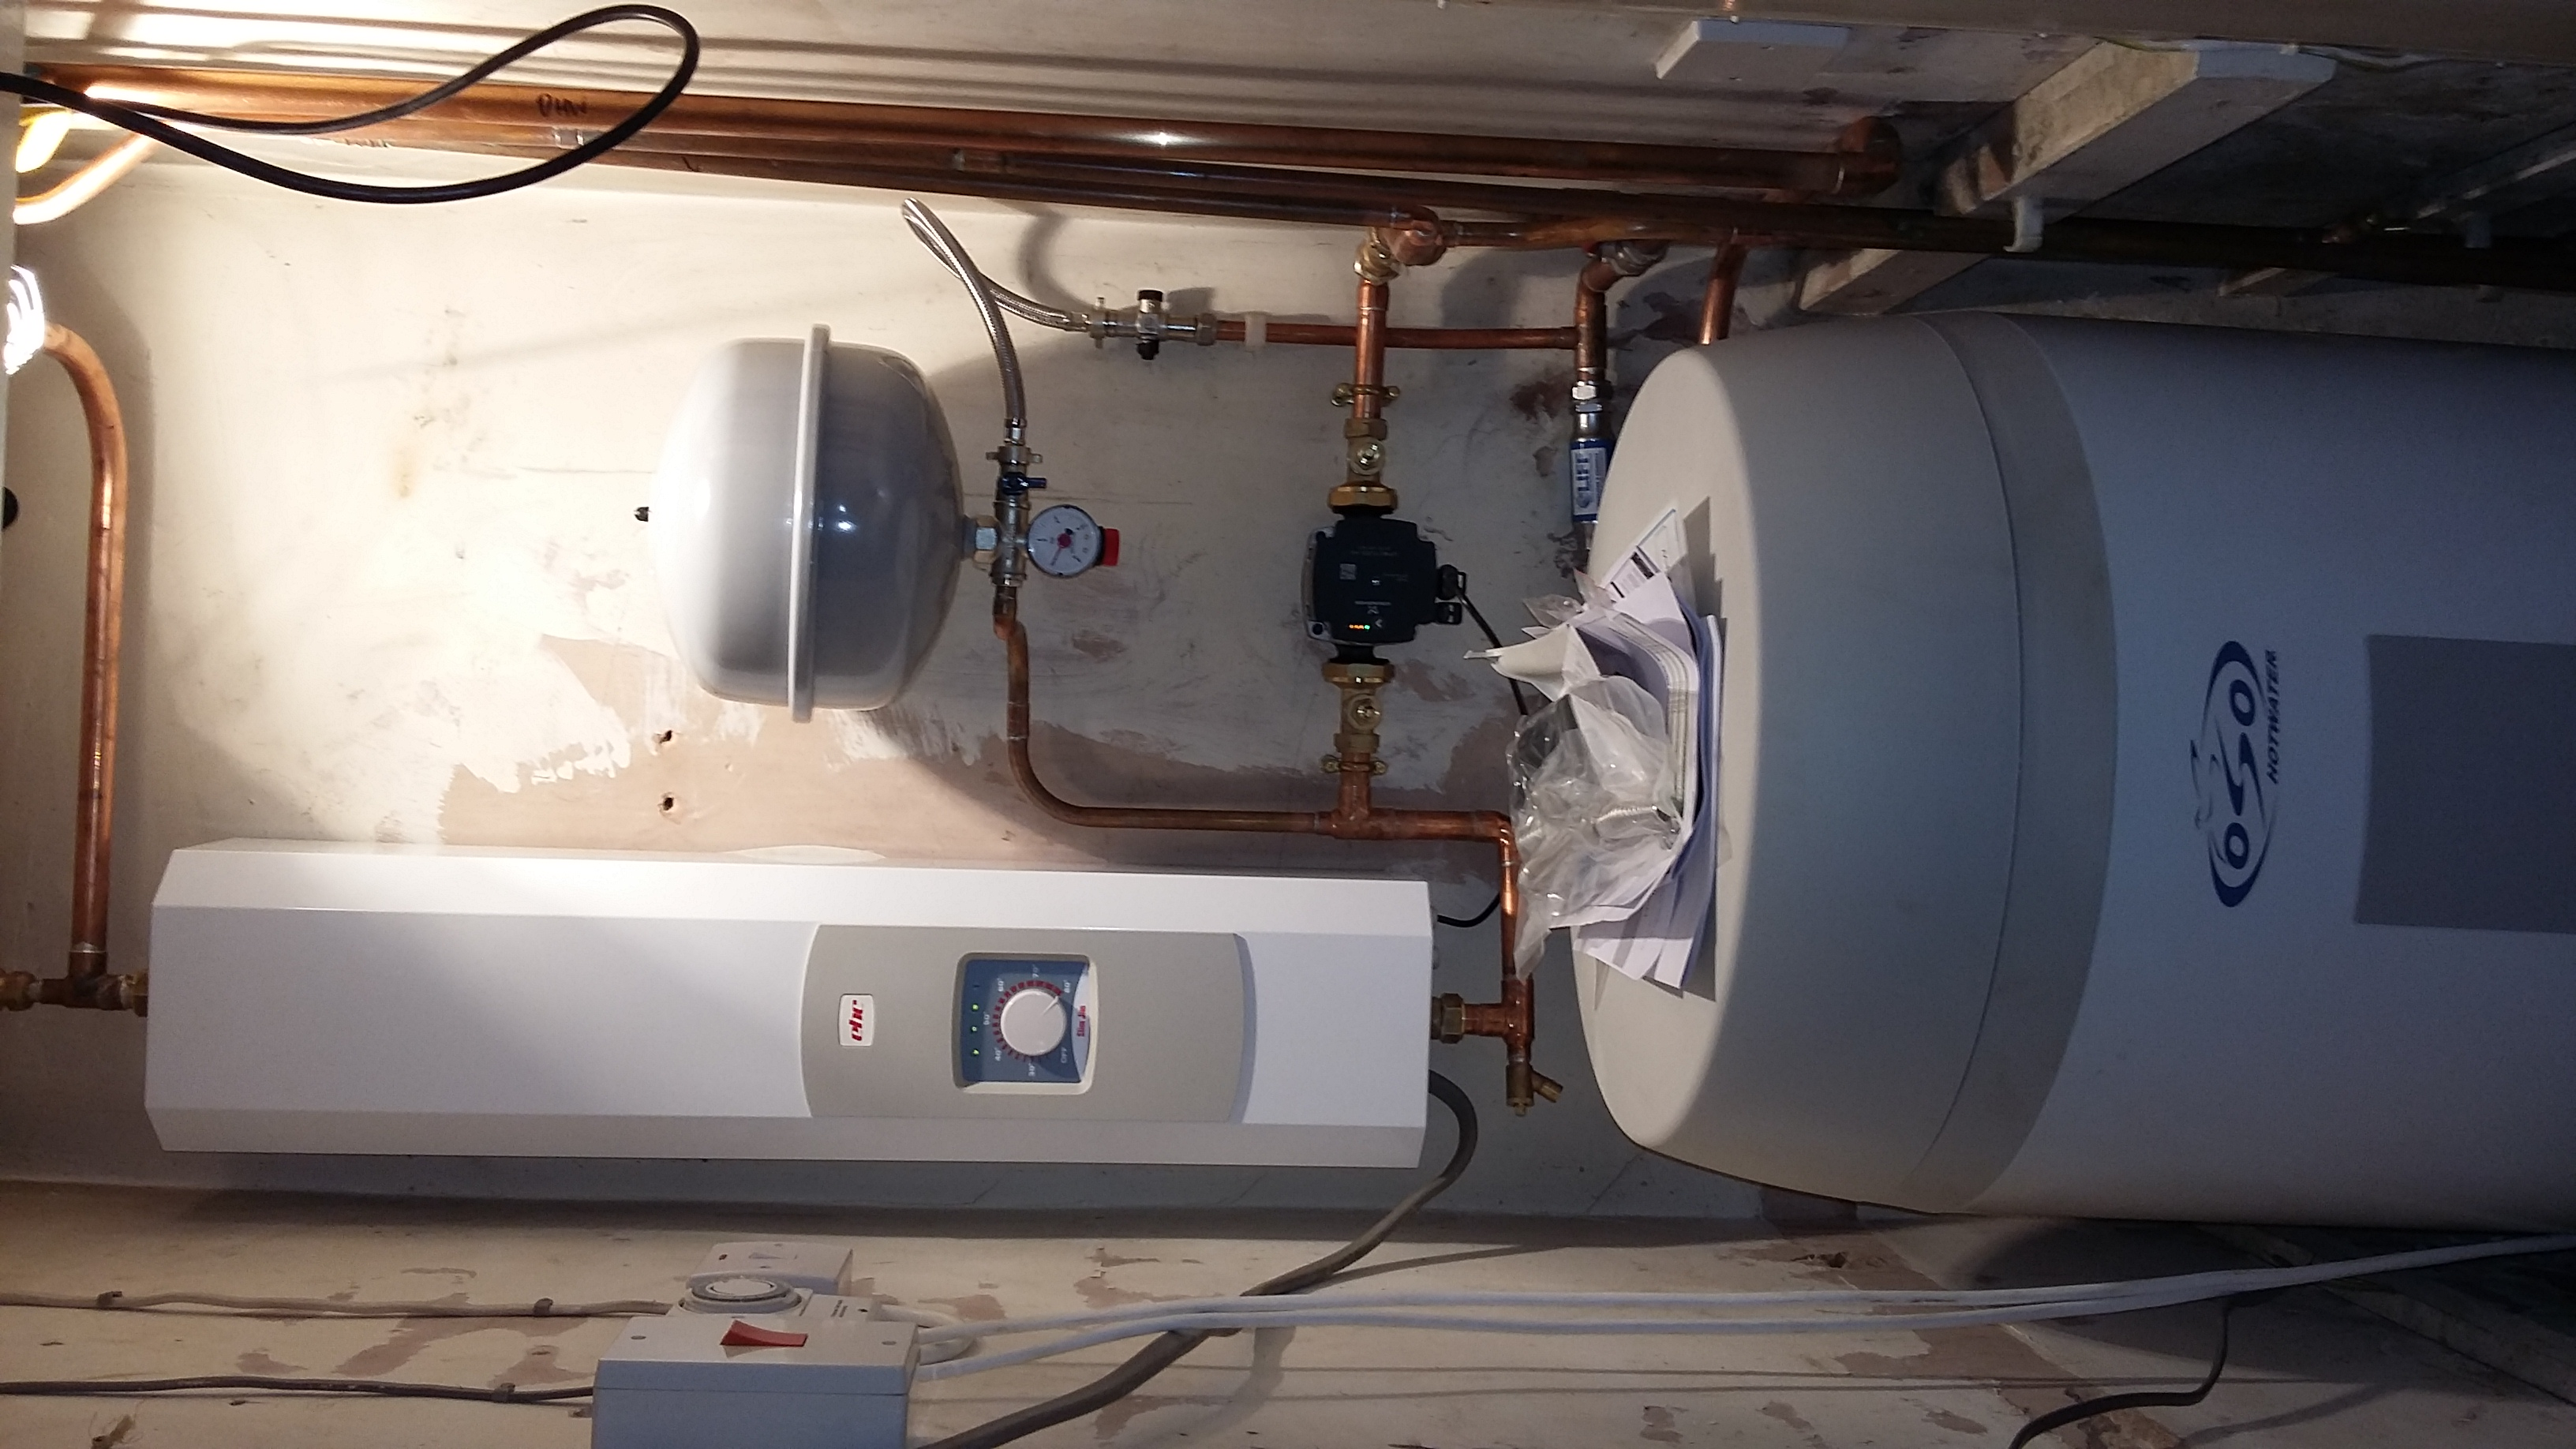 Electric boiler and hot water cylinder